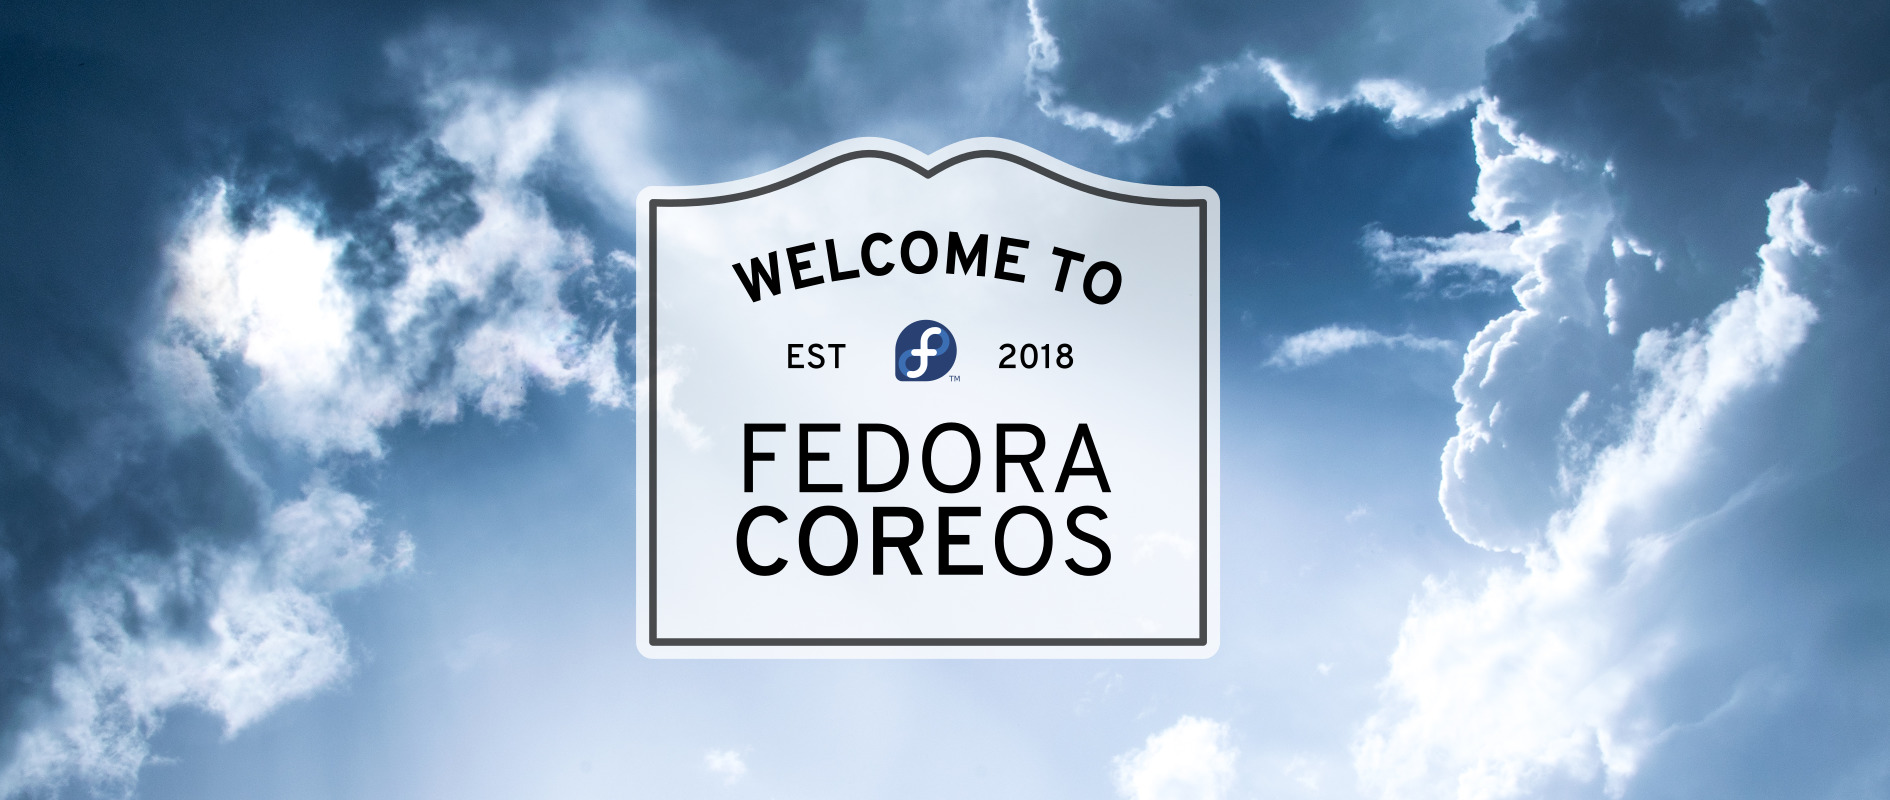 Fedora CoreOS: Meet the new Linux for Containers – Marksei